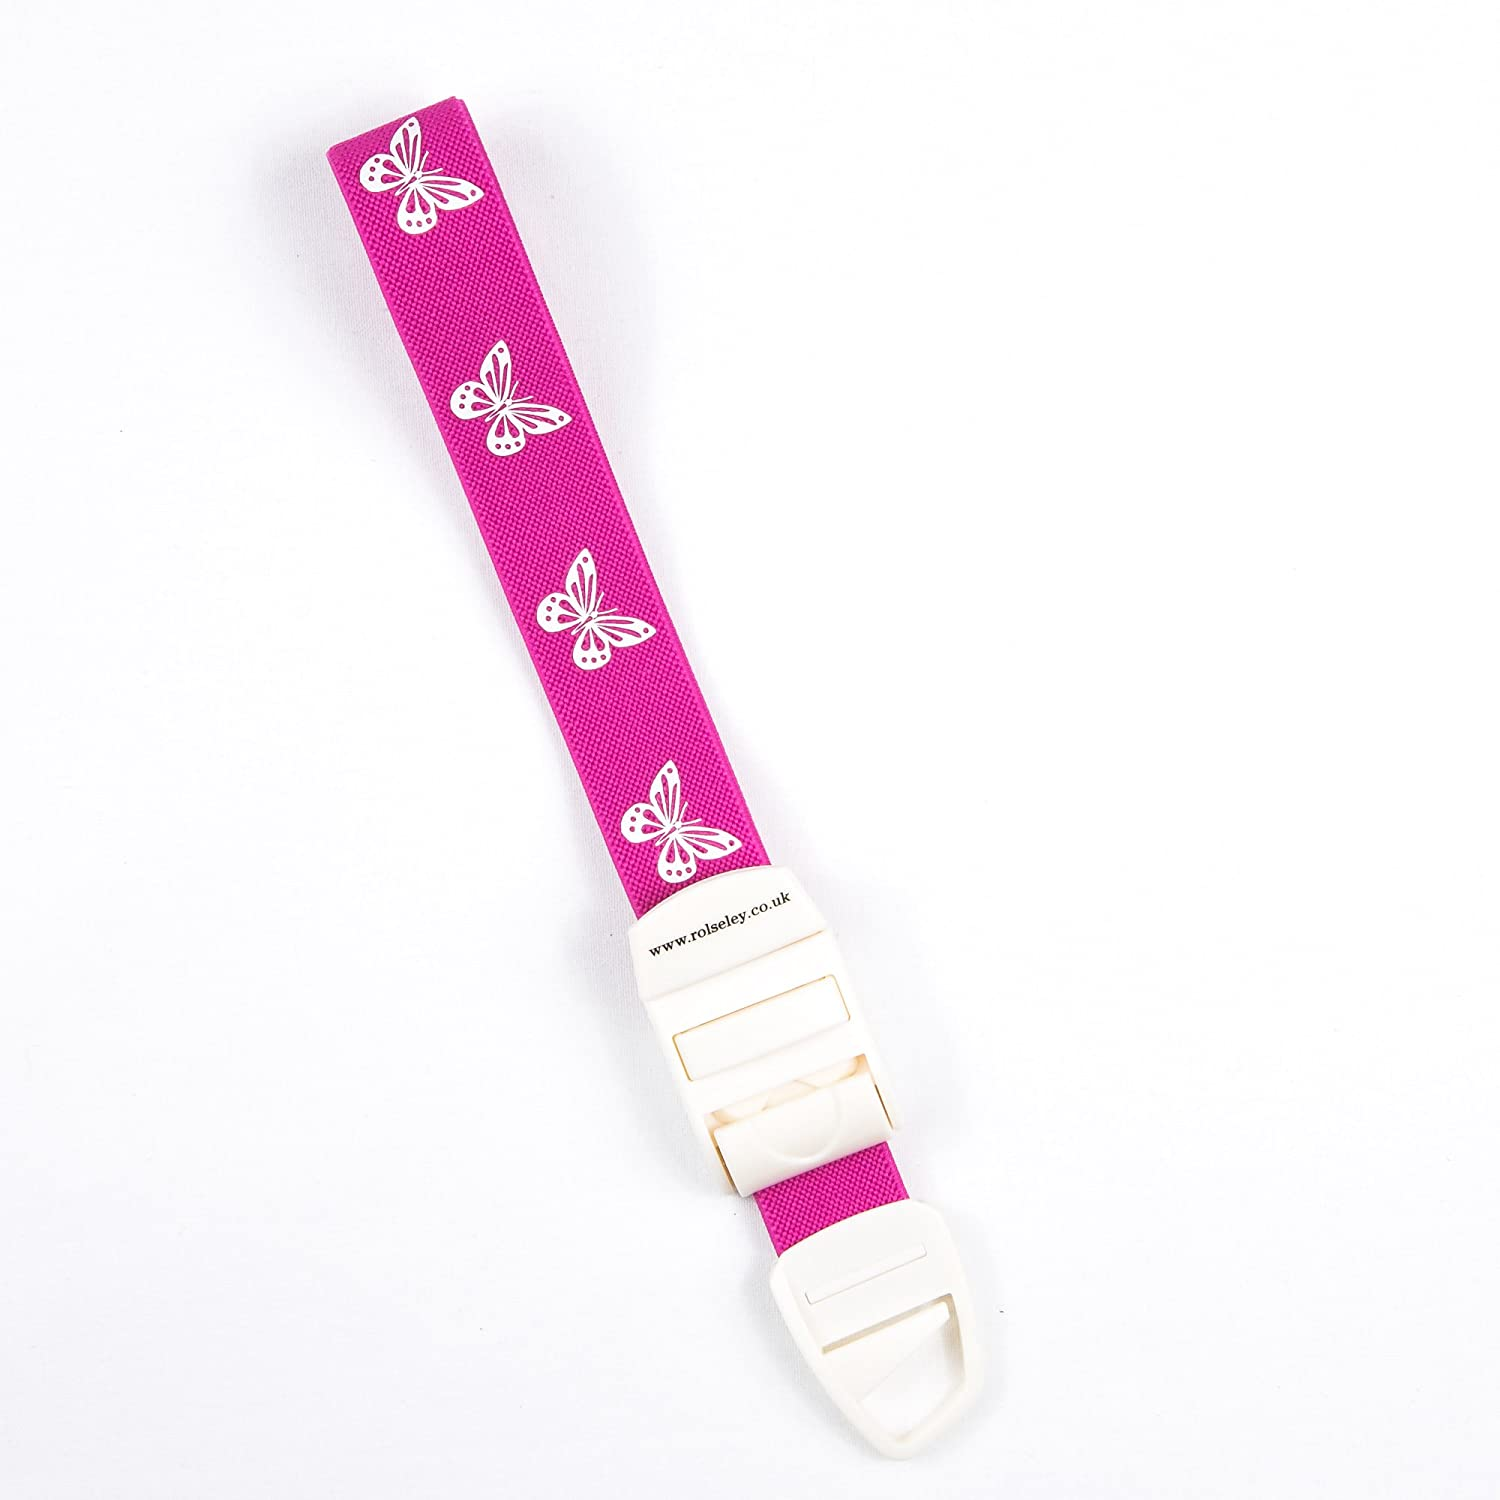 Rolseley Medical Tourniquet with Butterfly pattern PINK colour by Rolseley M1C